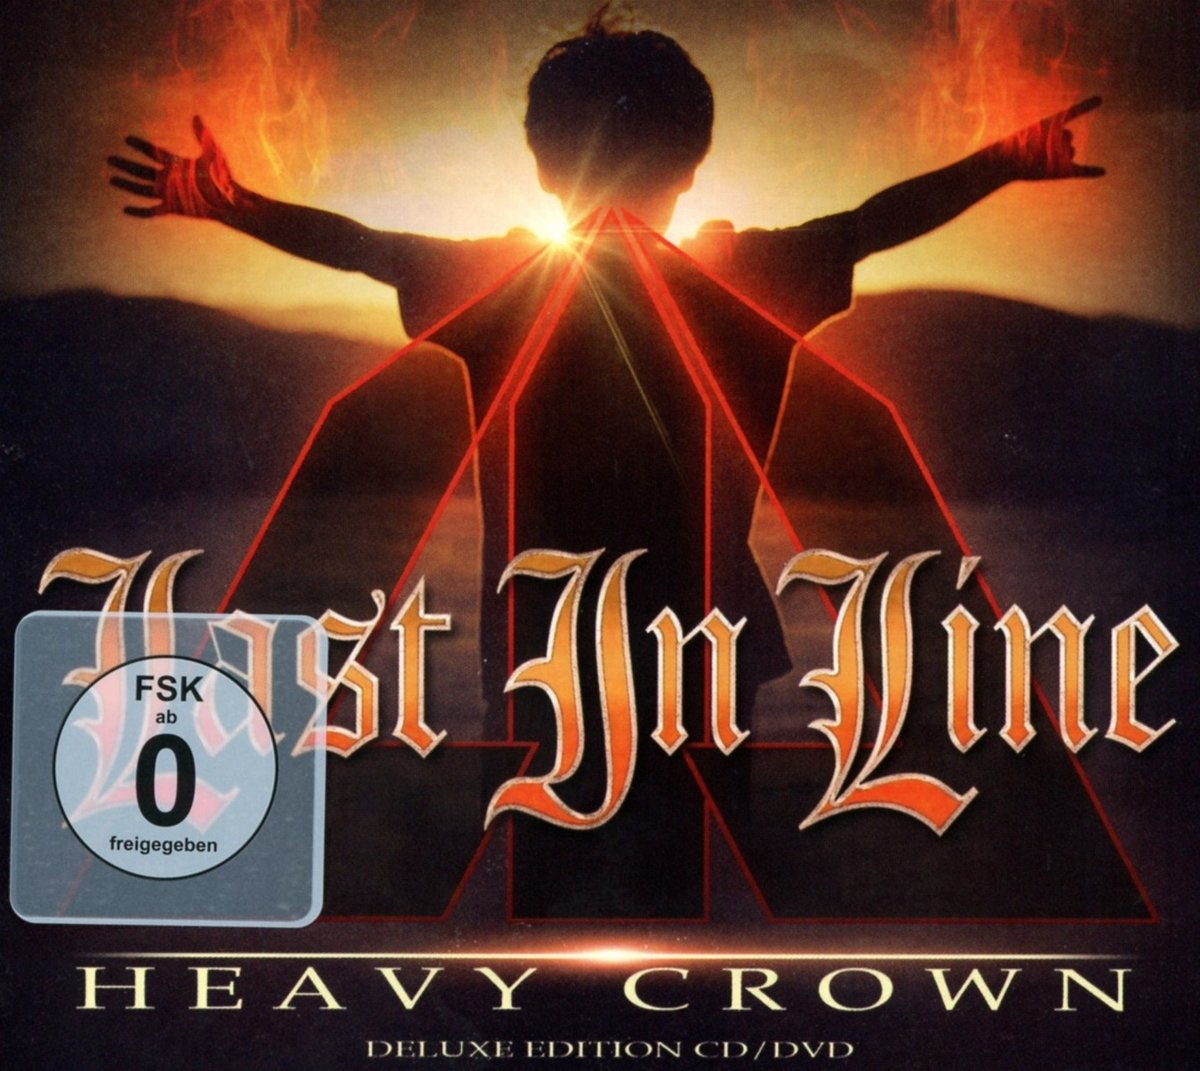 Heavy Crown (CD/DVD)(Deluxe Edition)